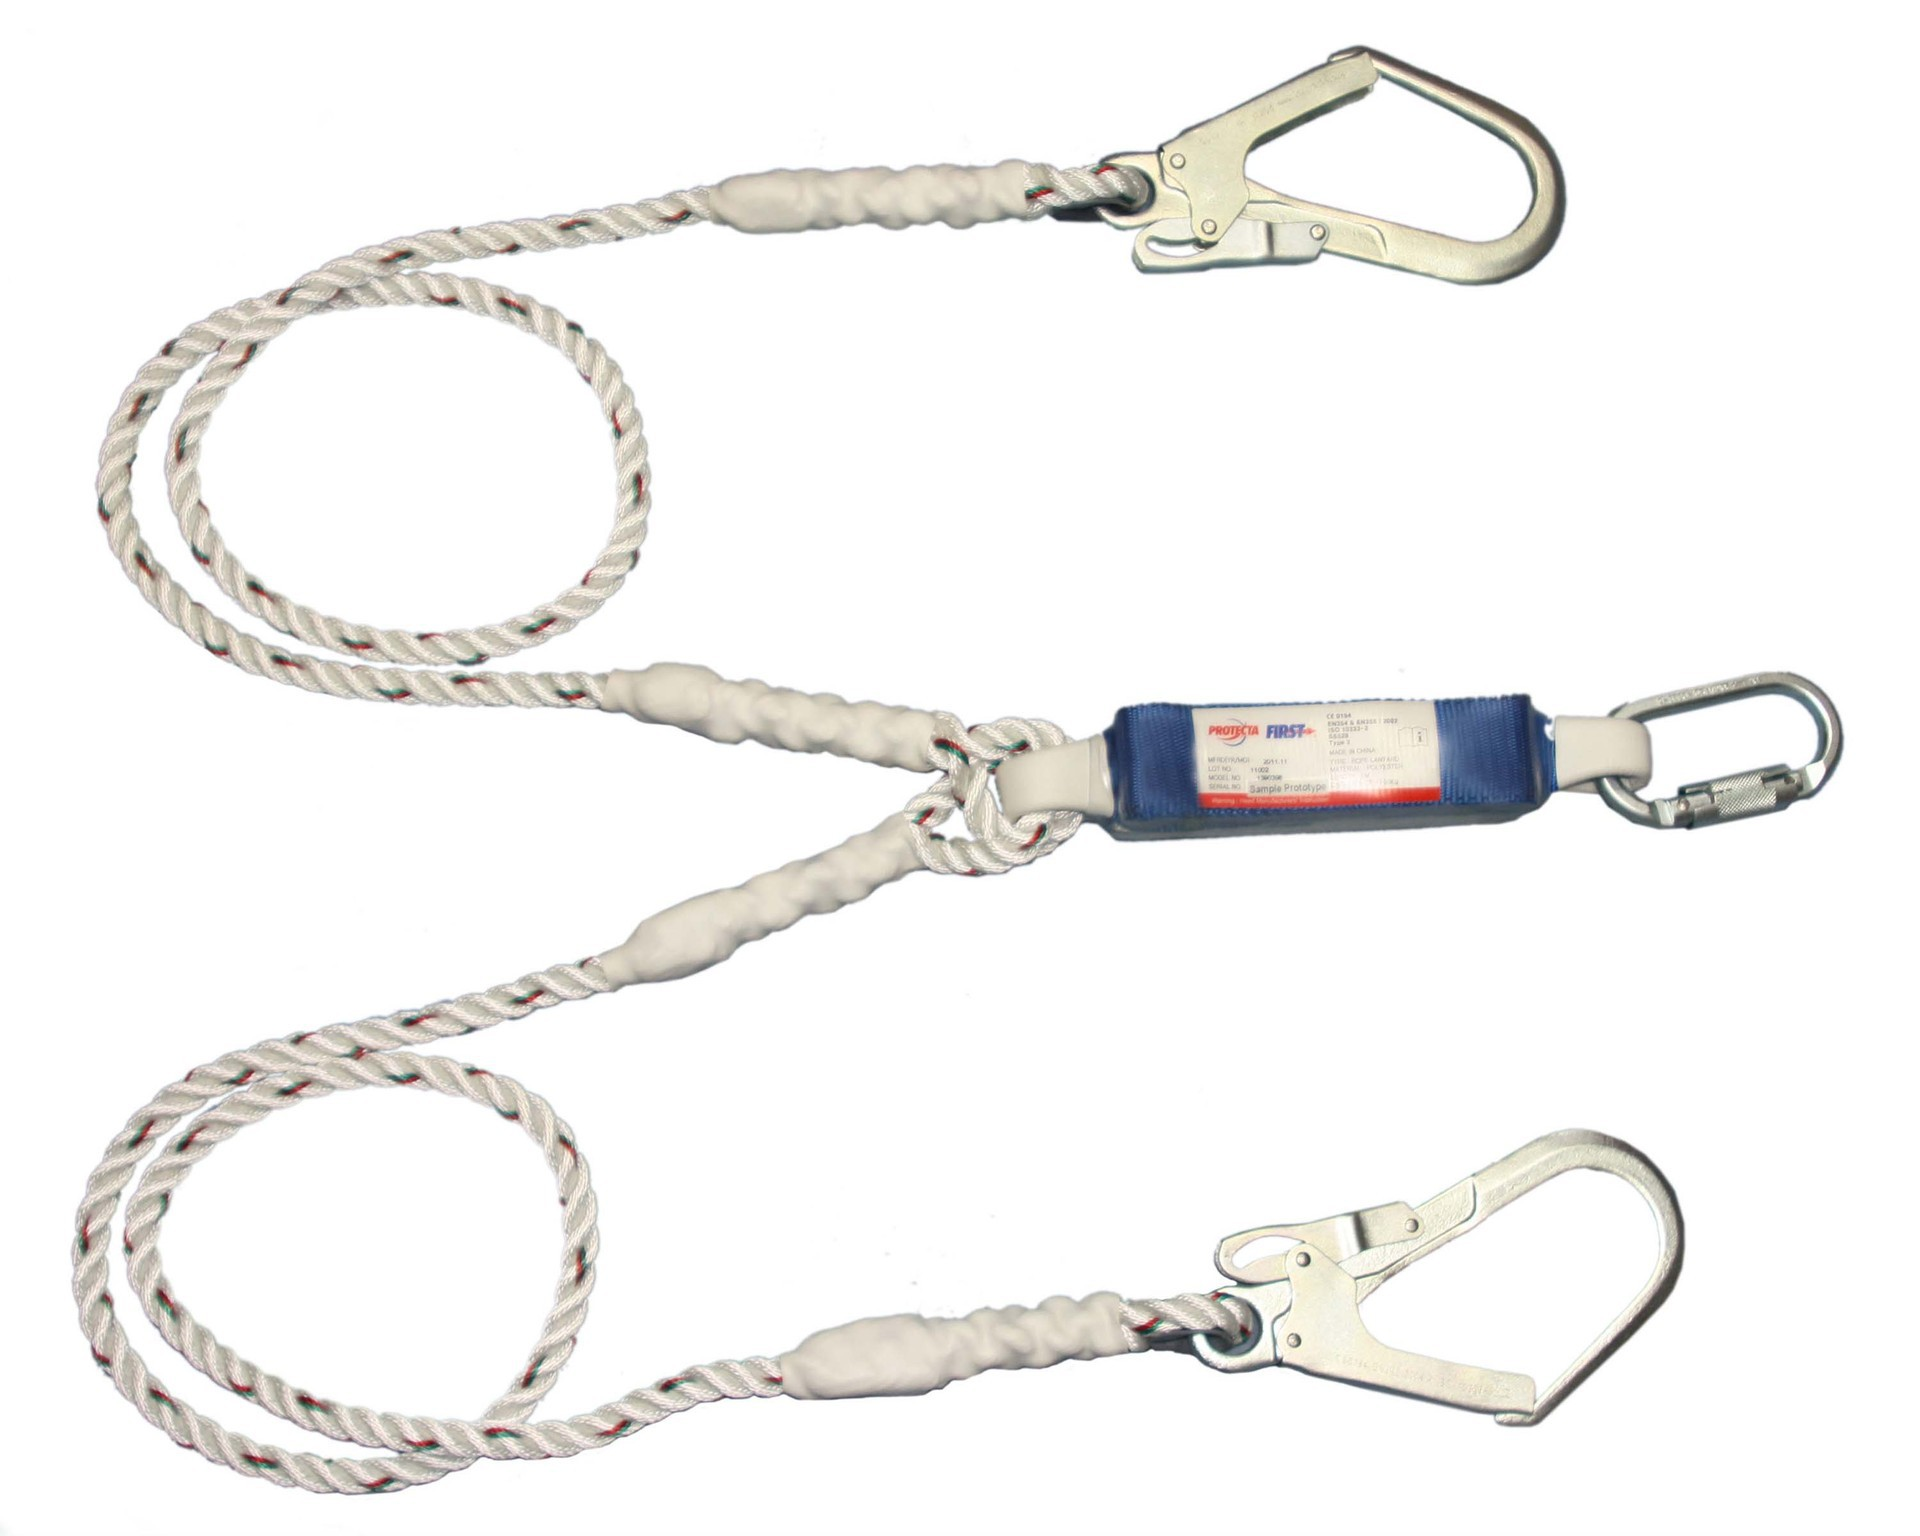 3M Cabot For 1390398 Tate First Double Hook Shock Absorption Connecting Rope Anti-Falling Hanging Safety Lanyard